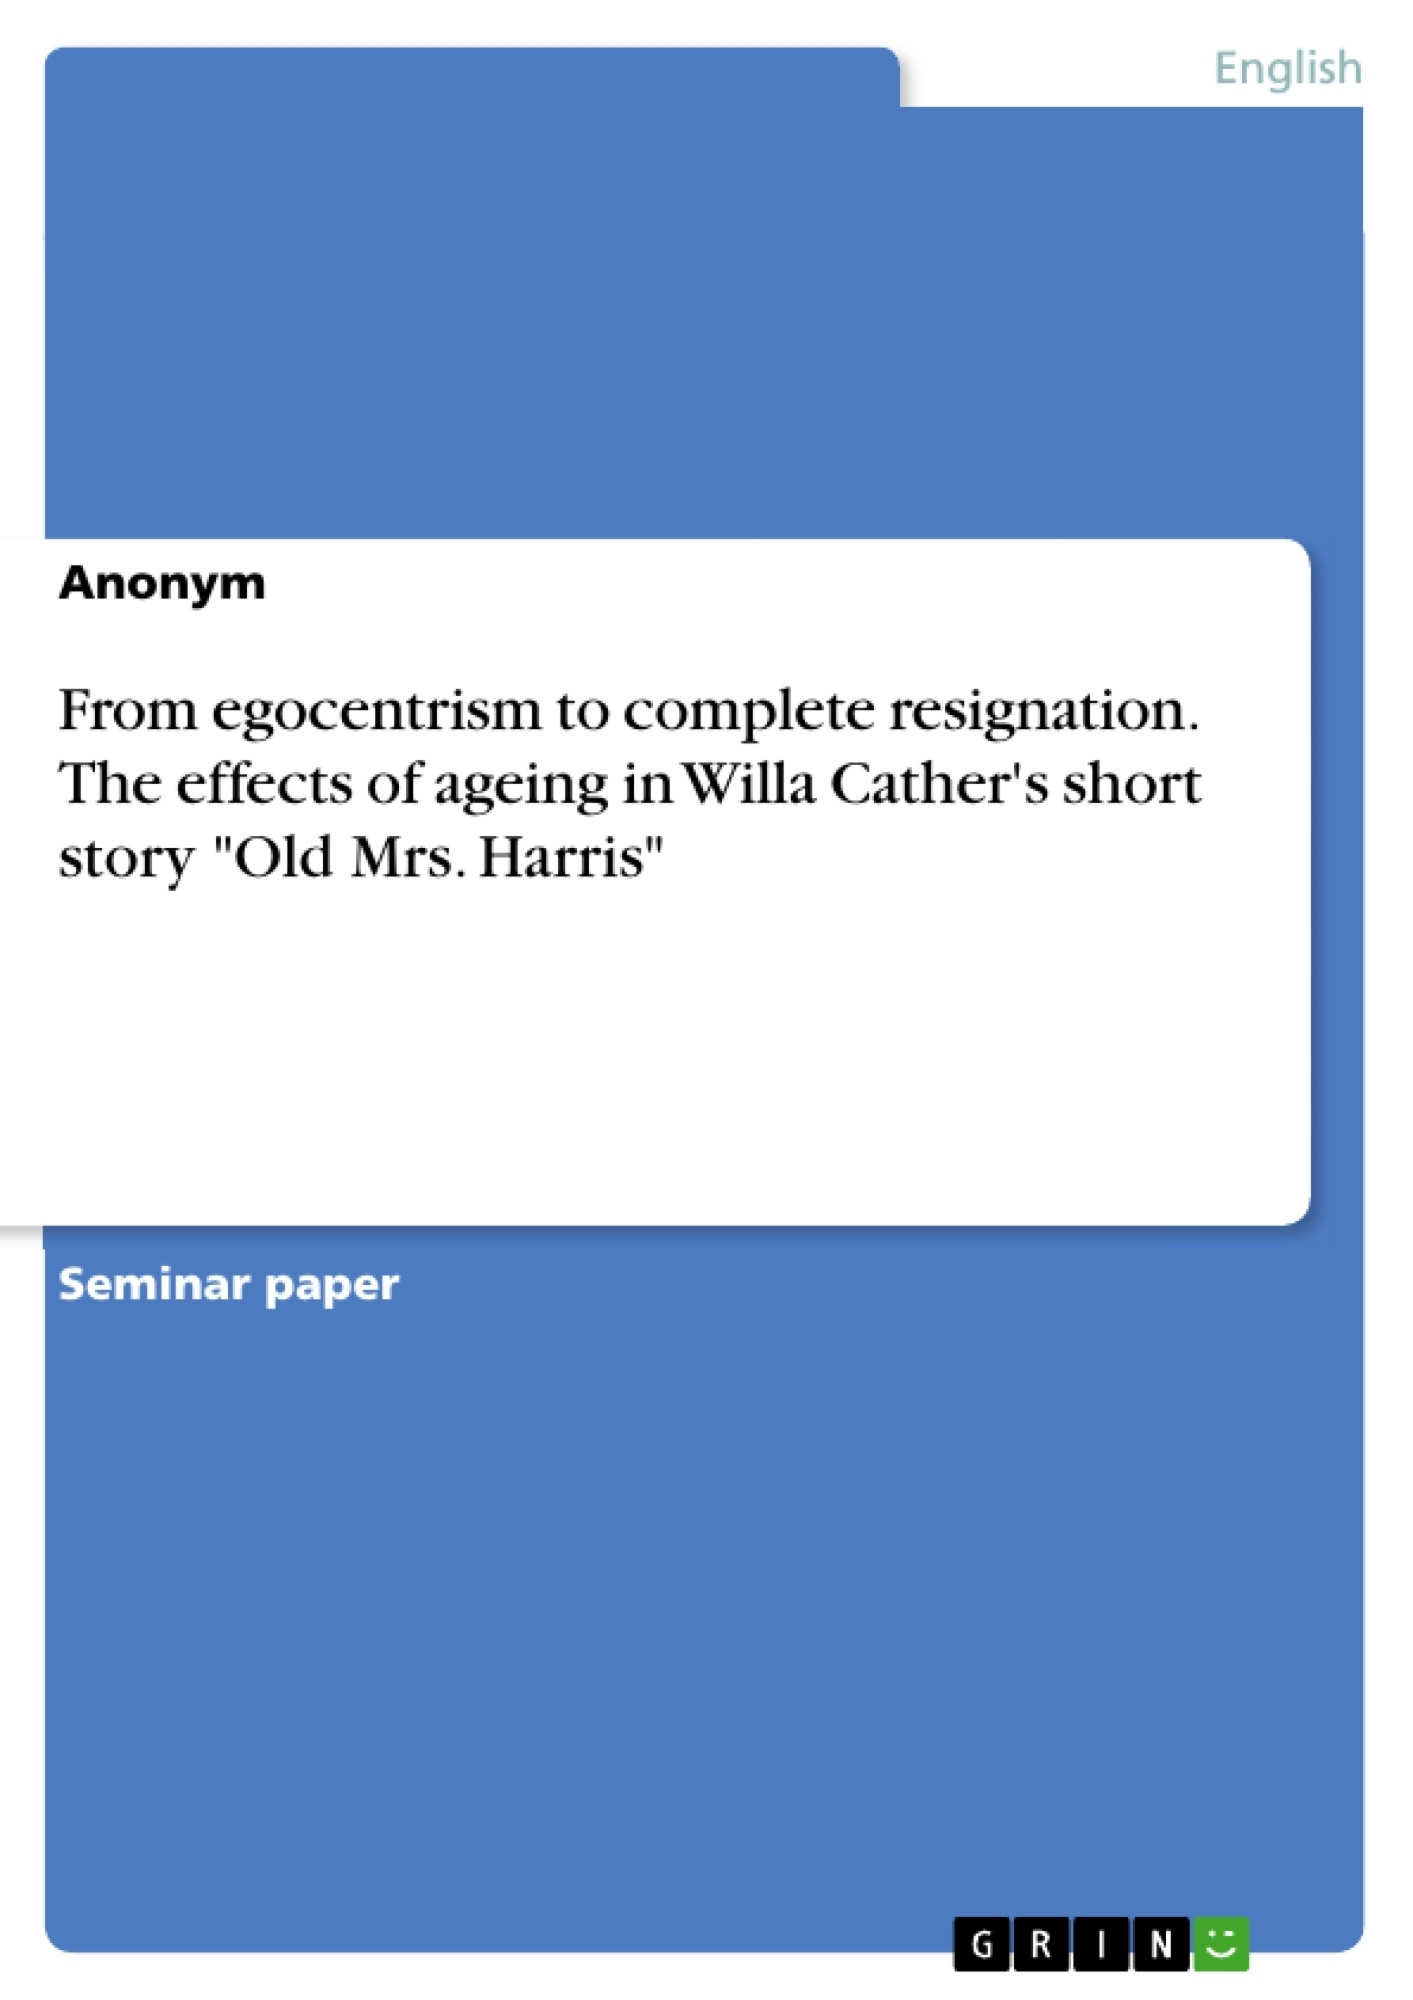 """Title: From egocentrism to complete resignation. The effects of ageing in Willa Cather's short story """"Old Mrs. Harris"""""""